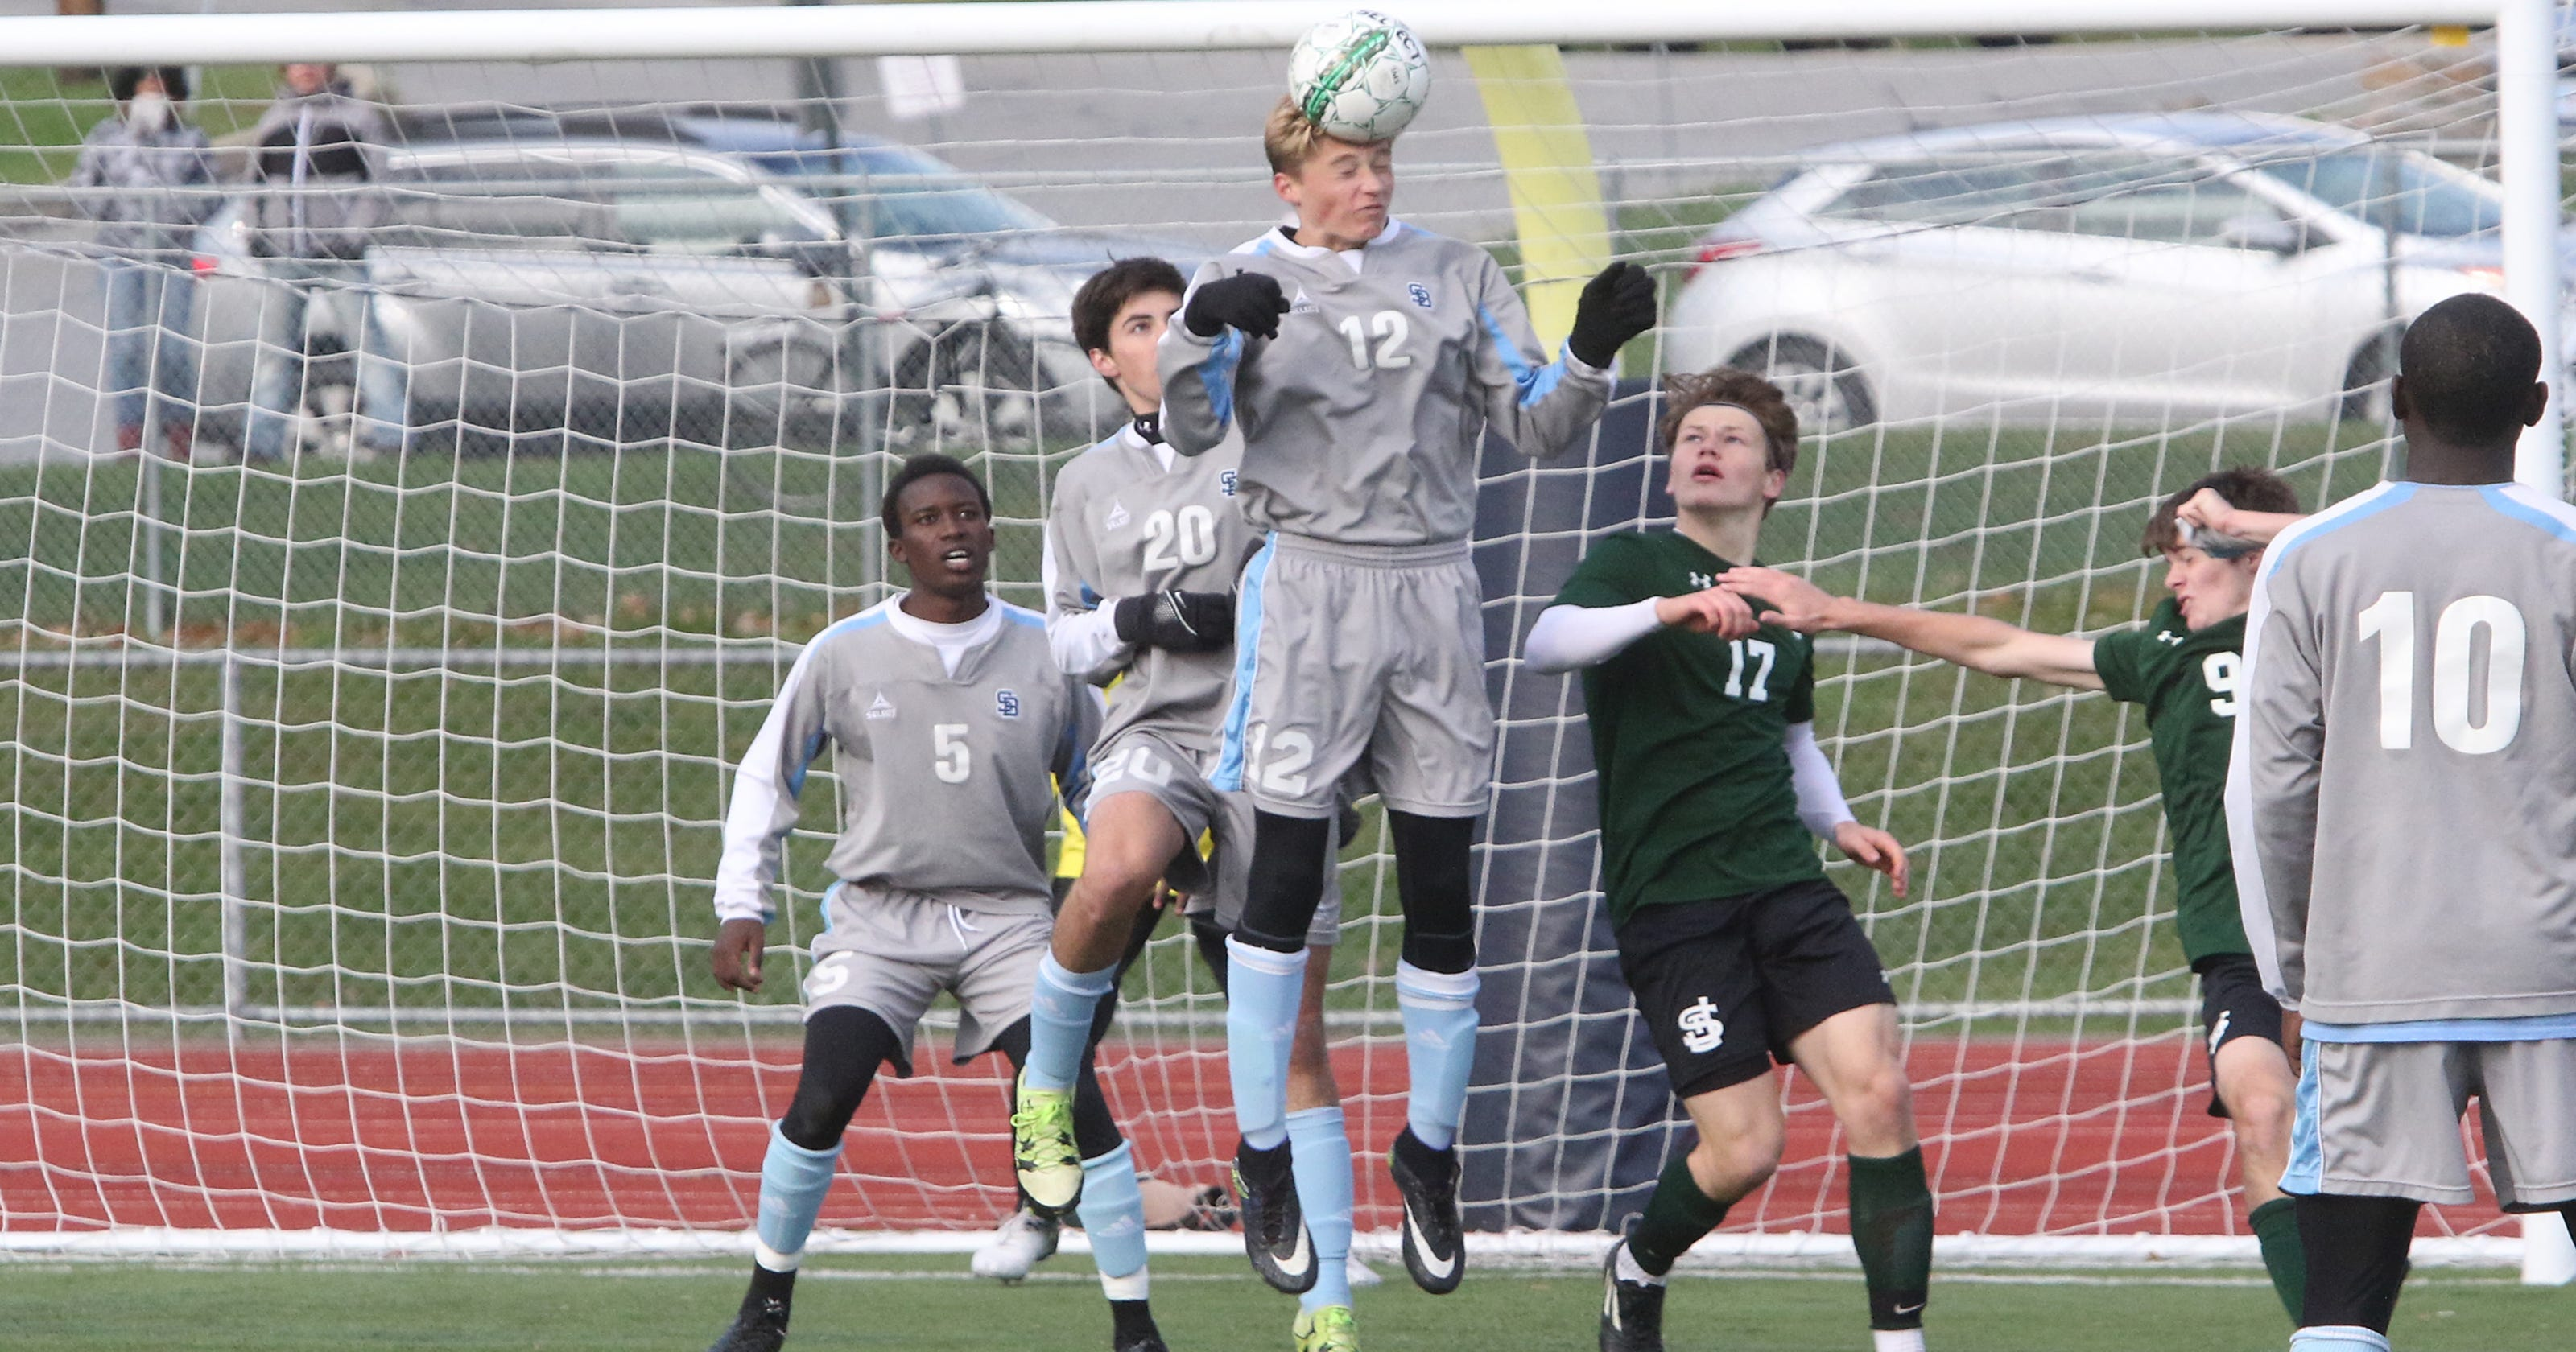 Vermont High School Boys Soccer 2018 Chittenden County Outlook